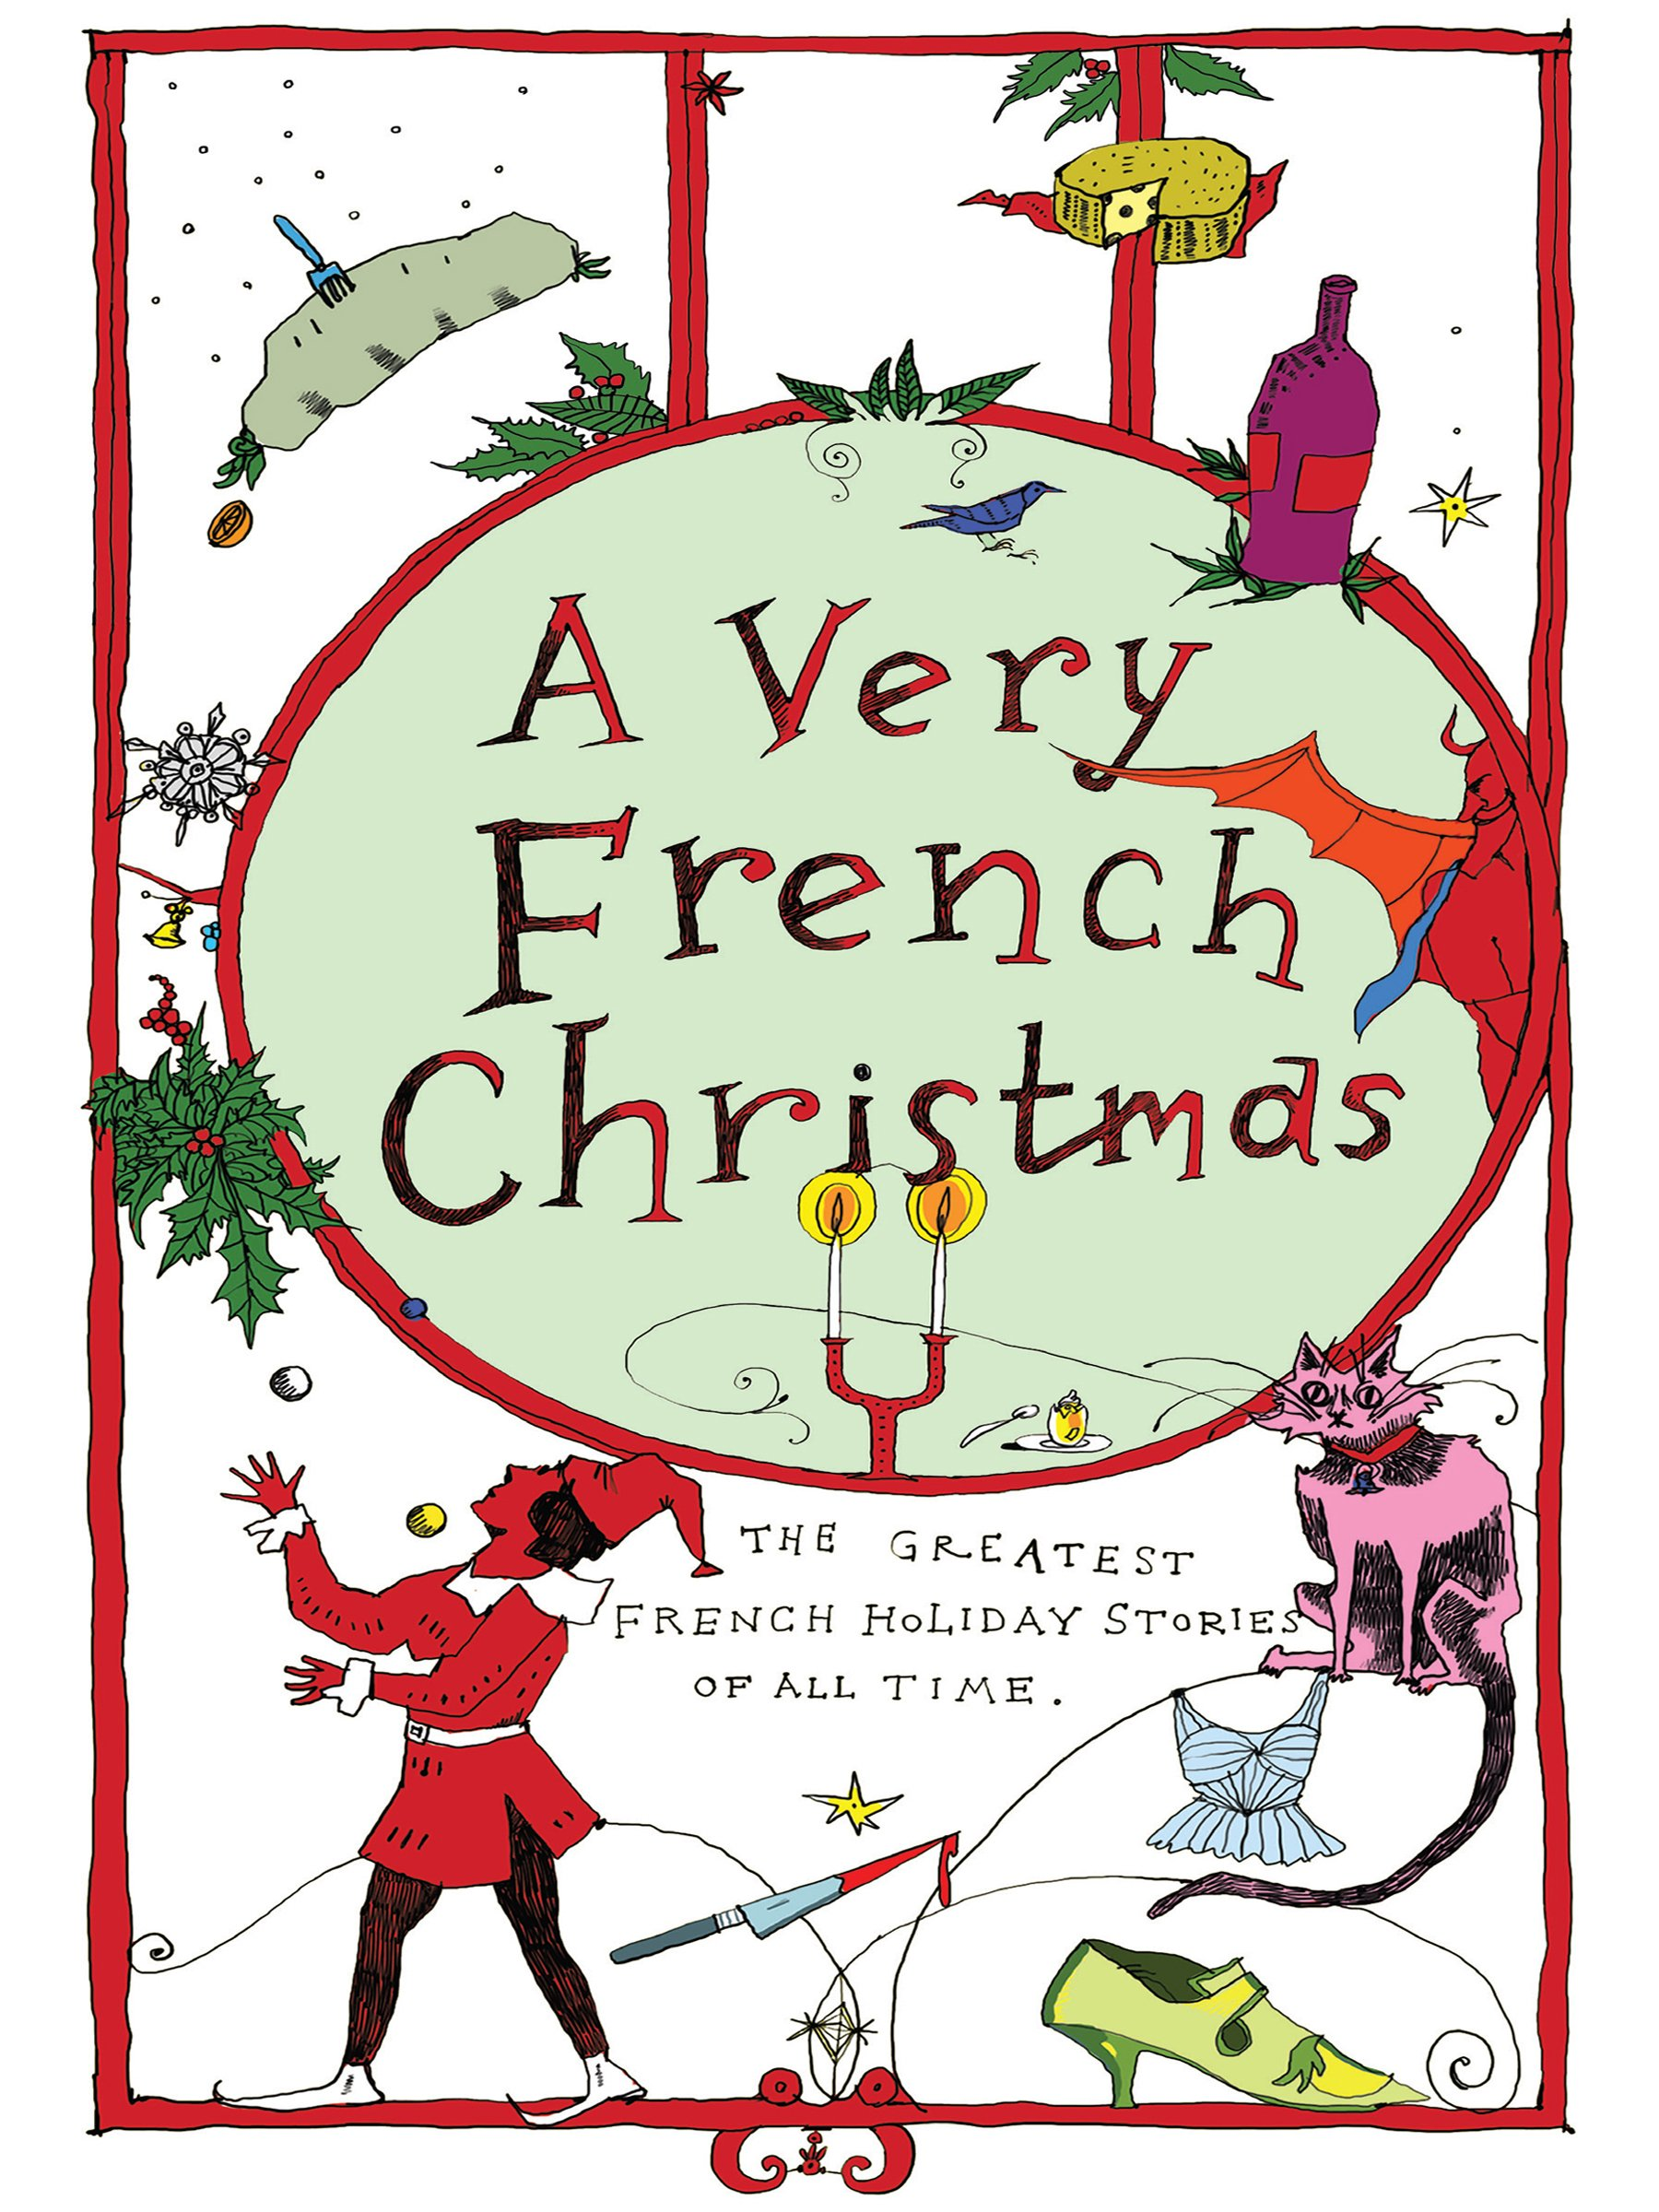 A very french christmas the greatest french holiday stories of all a very french christmas the greatest french holiday stories of all time very christmas guy de maupassant alphonse daudet anatole france m4hsunfo